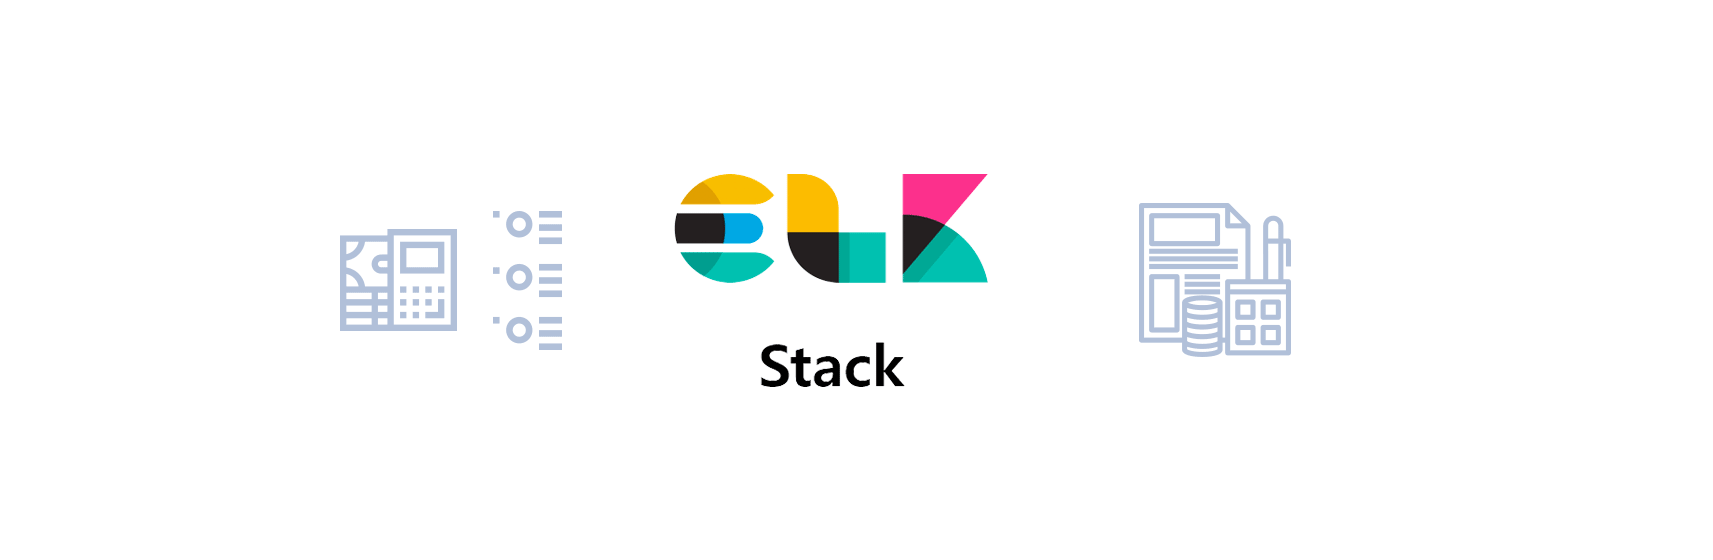 How much does free ELK stack cost you?